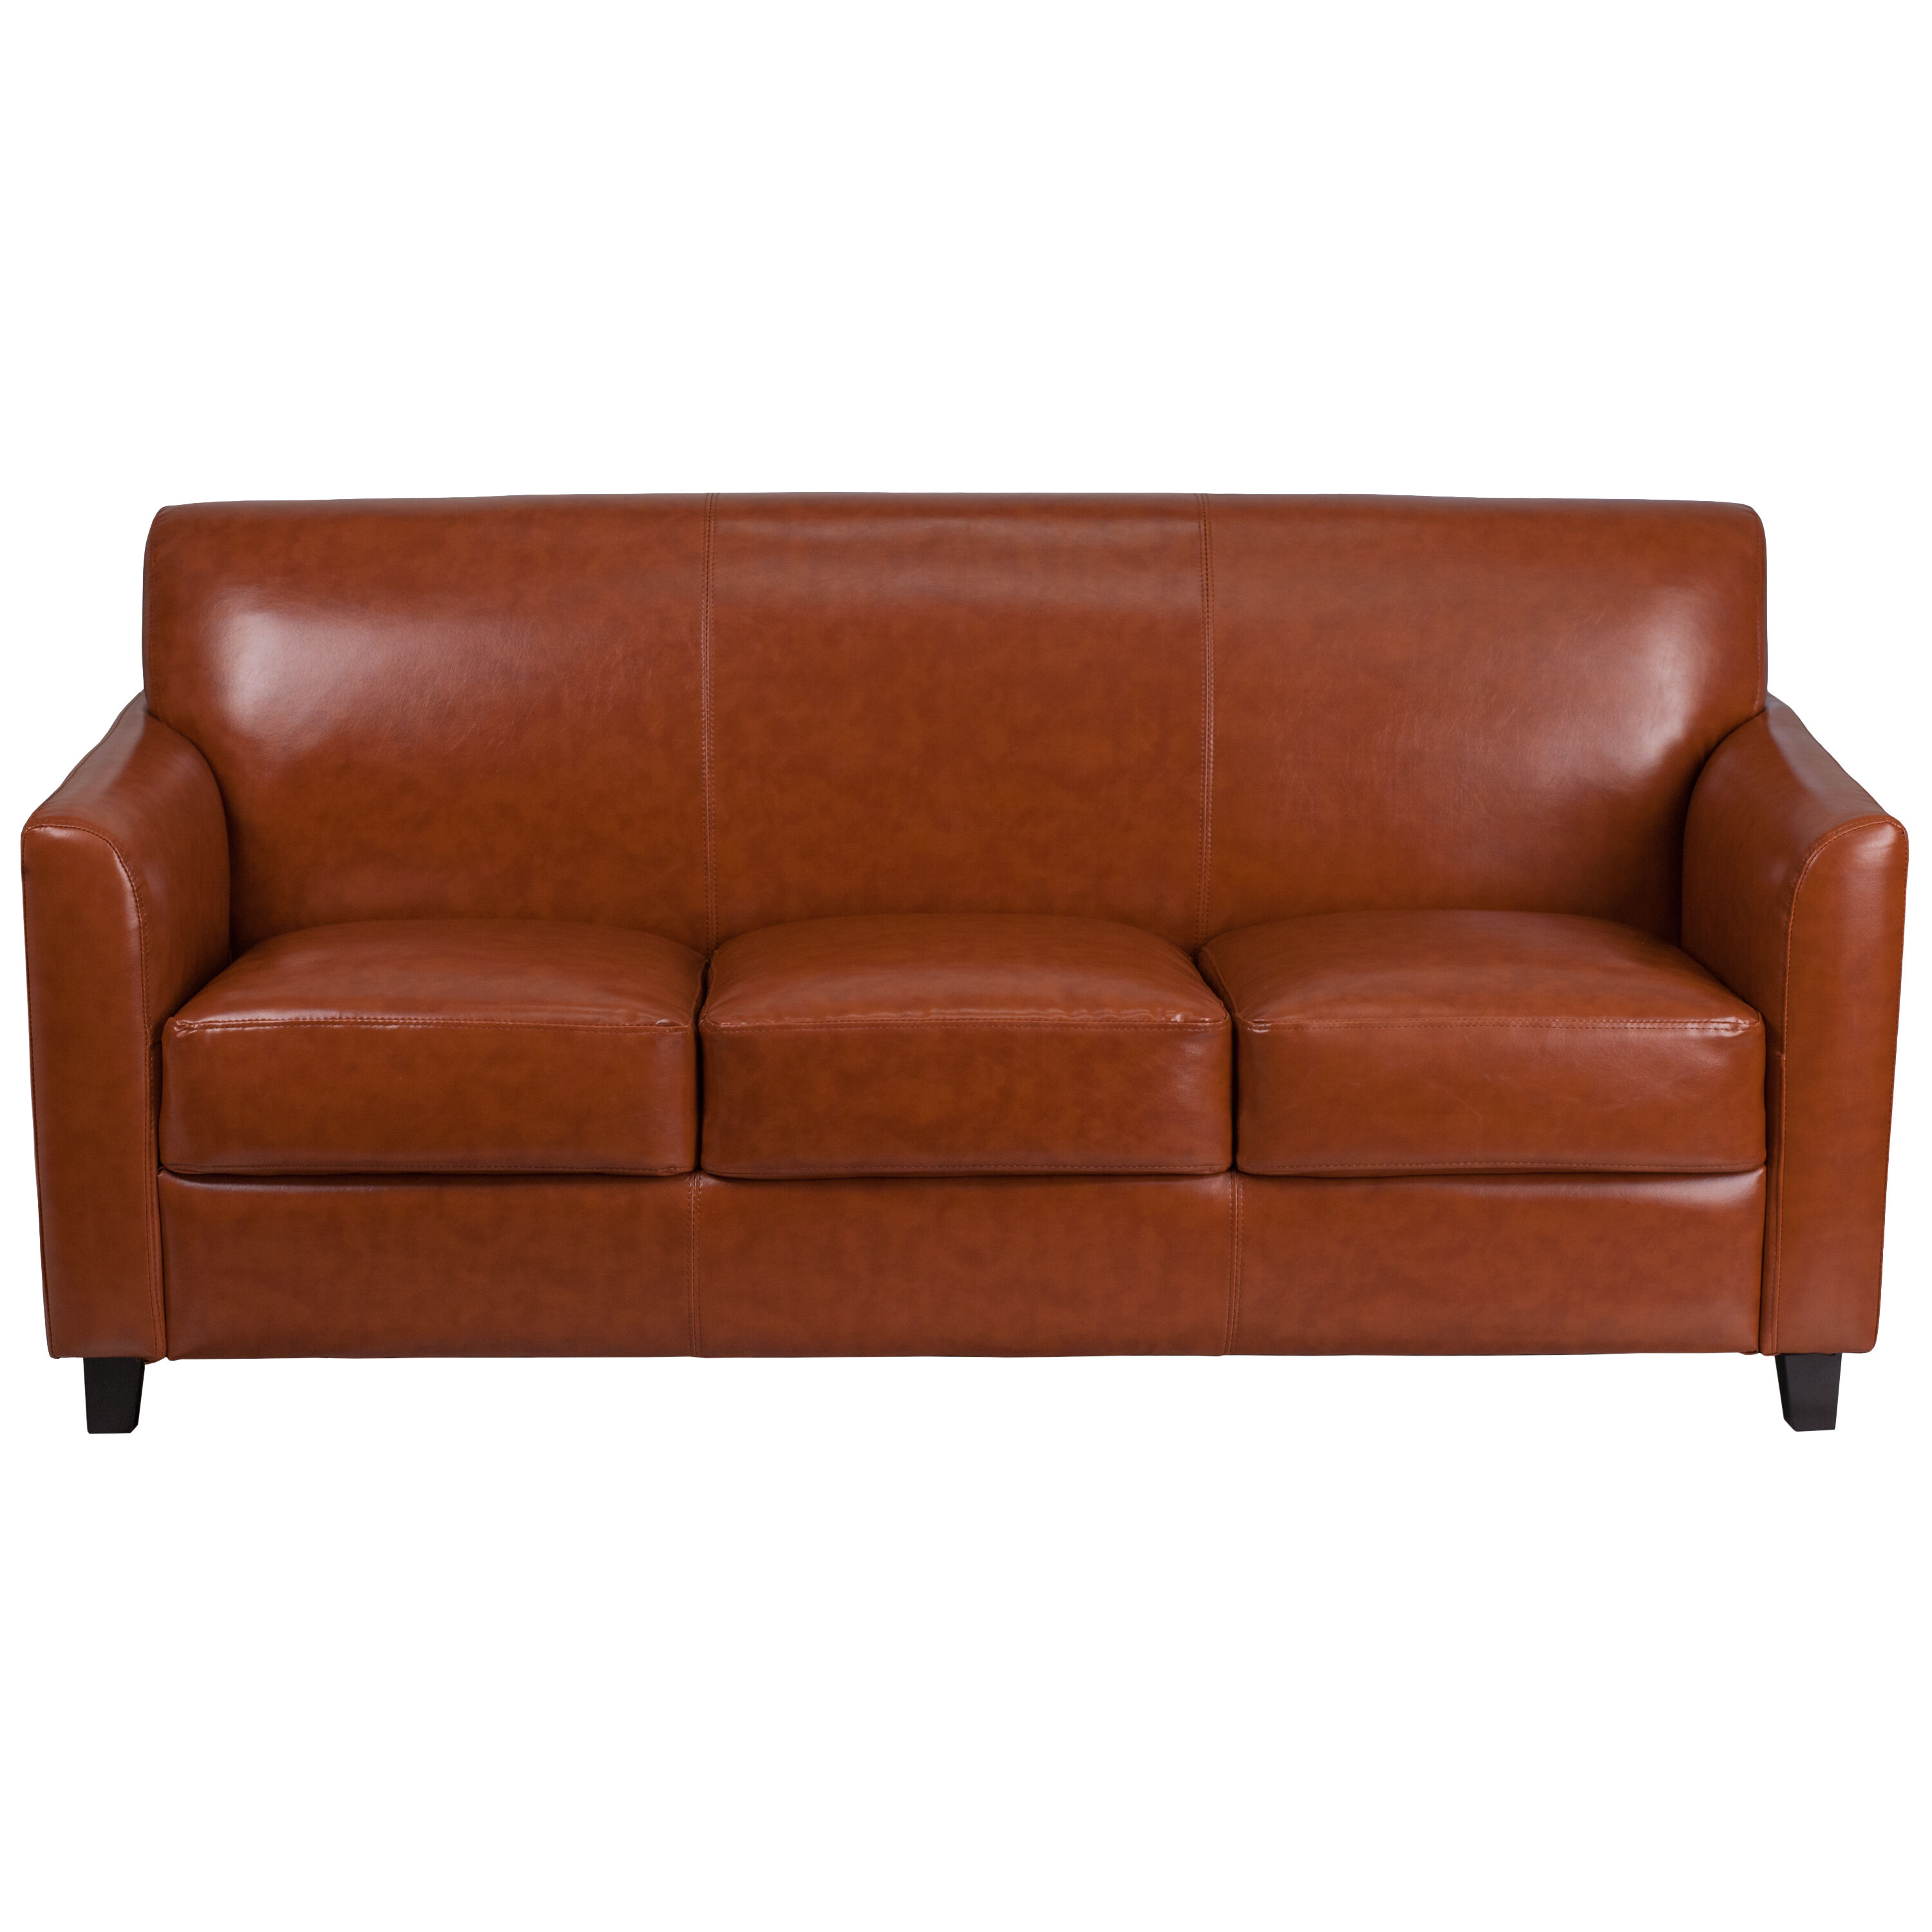 Our HERCULES Diplomat Series Cognac Leather Sofa Is On Sale Now.